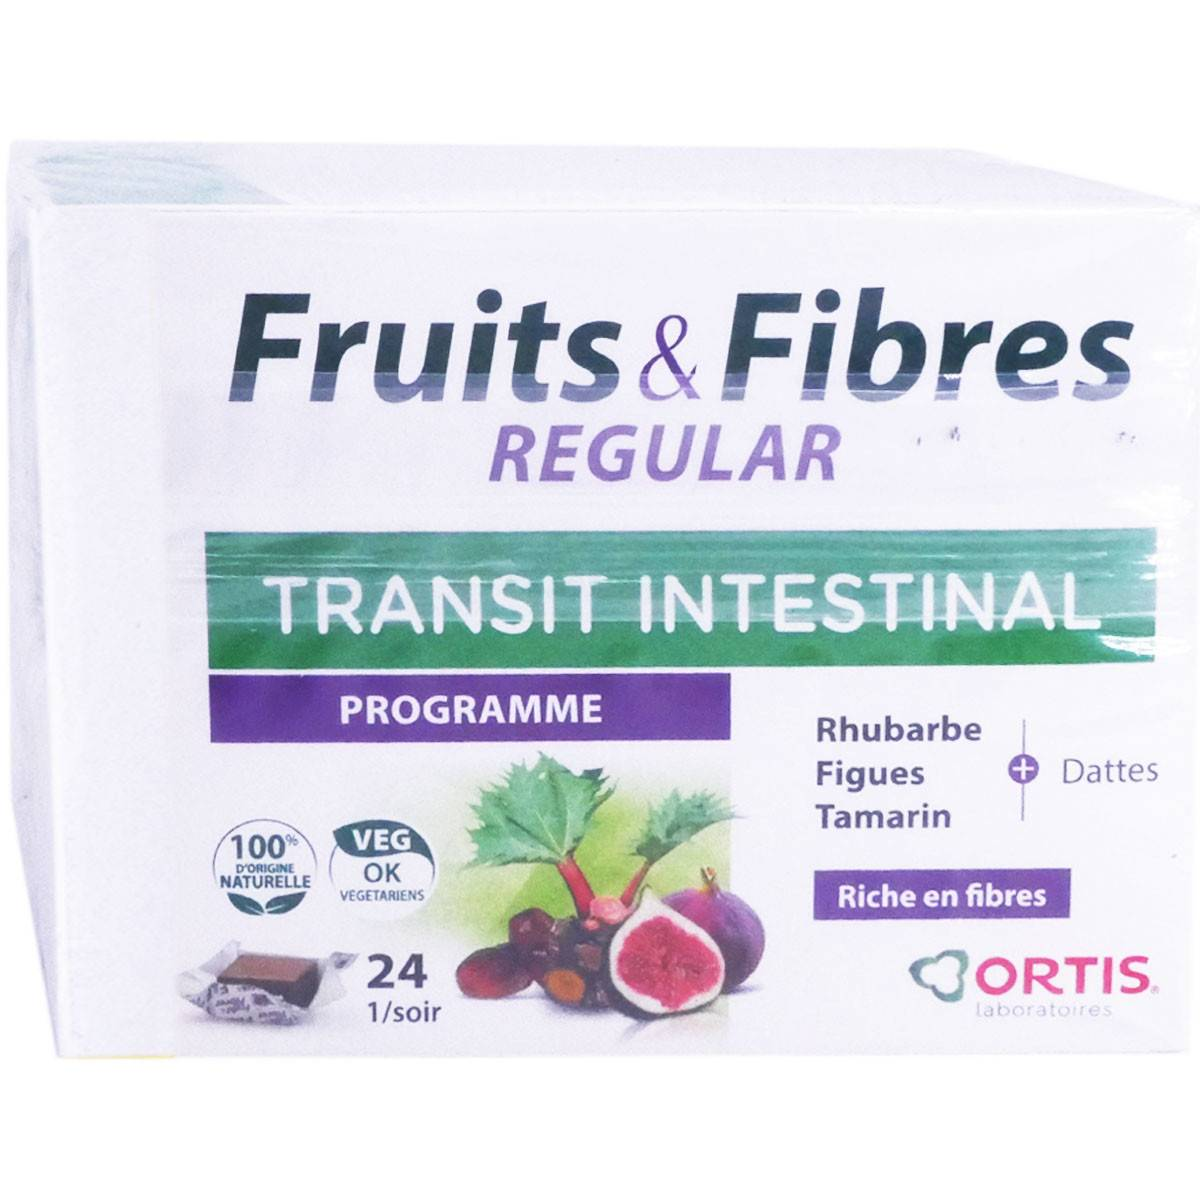 Ortis fruits & fibres regular transit intestinal 2x24 cubes